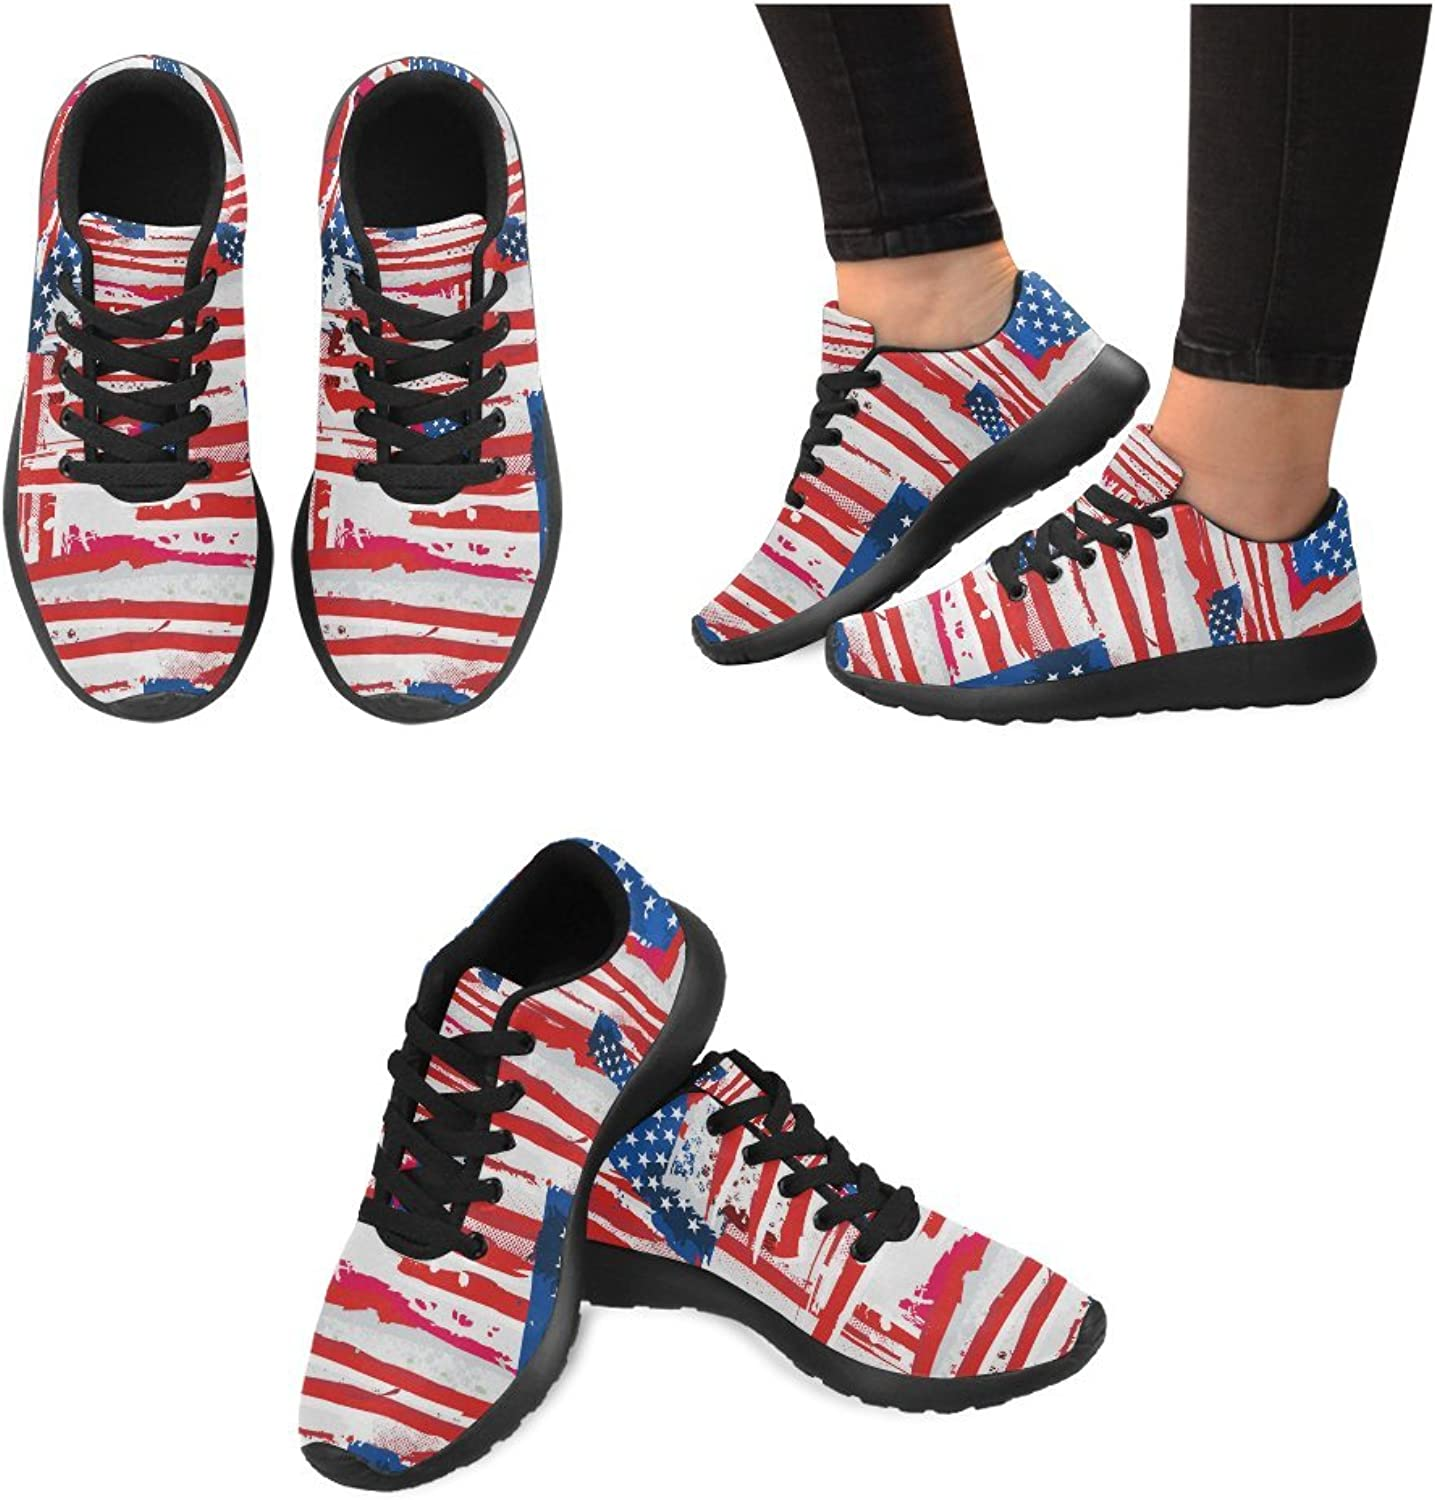 InterestPrint Graphic USA Flag Pattern Print on Women's Running shoes Casual Lightweight Athletic Sneakers US Size 6-15